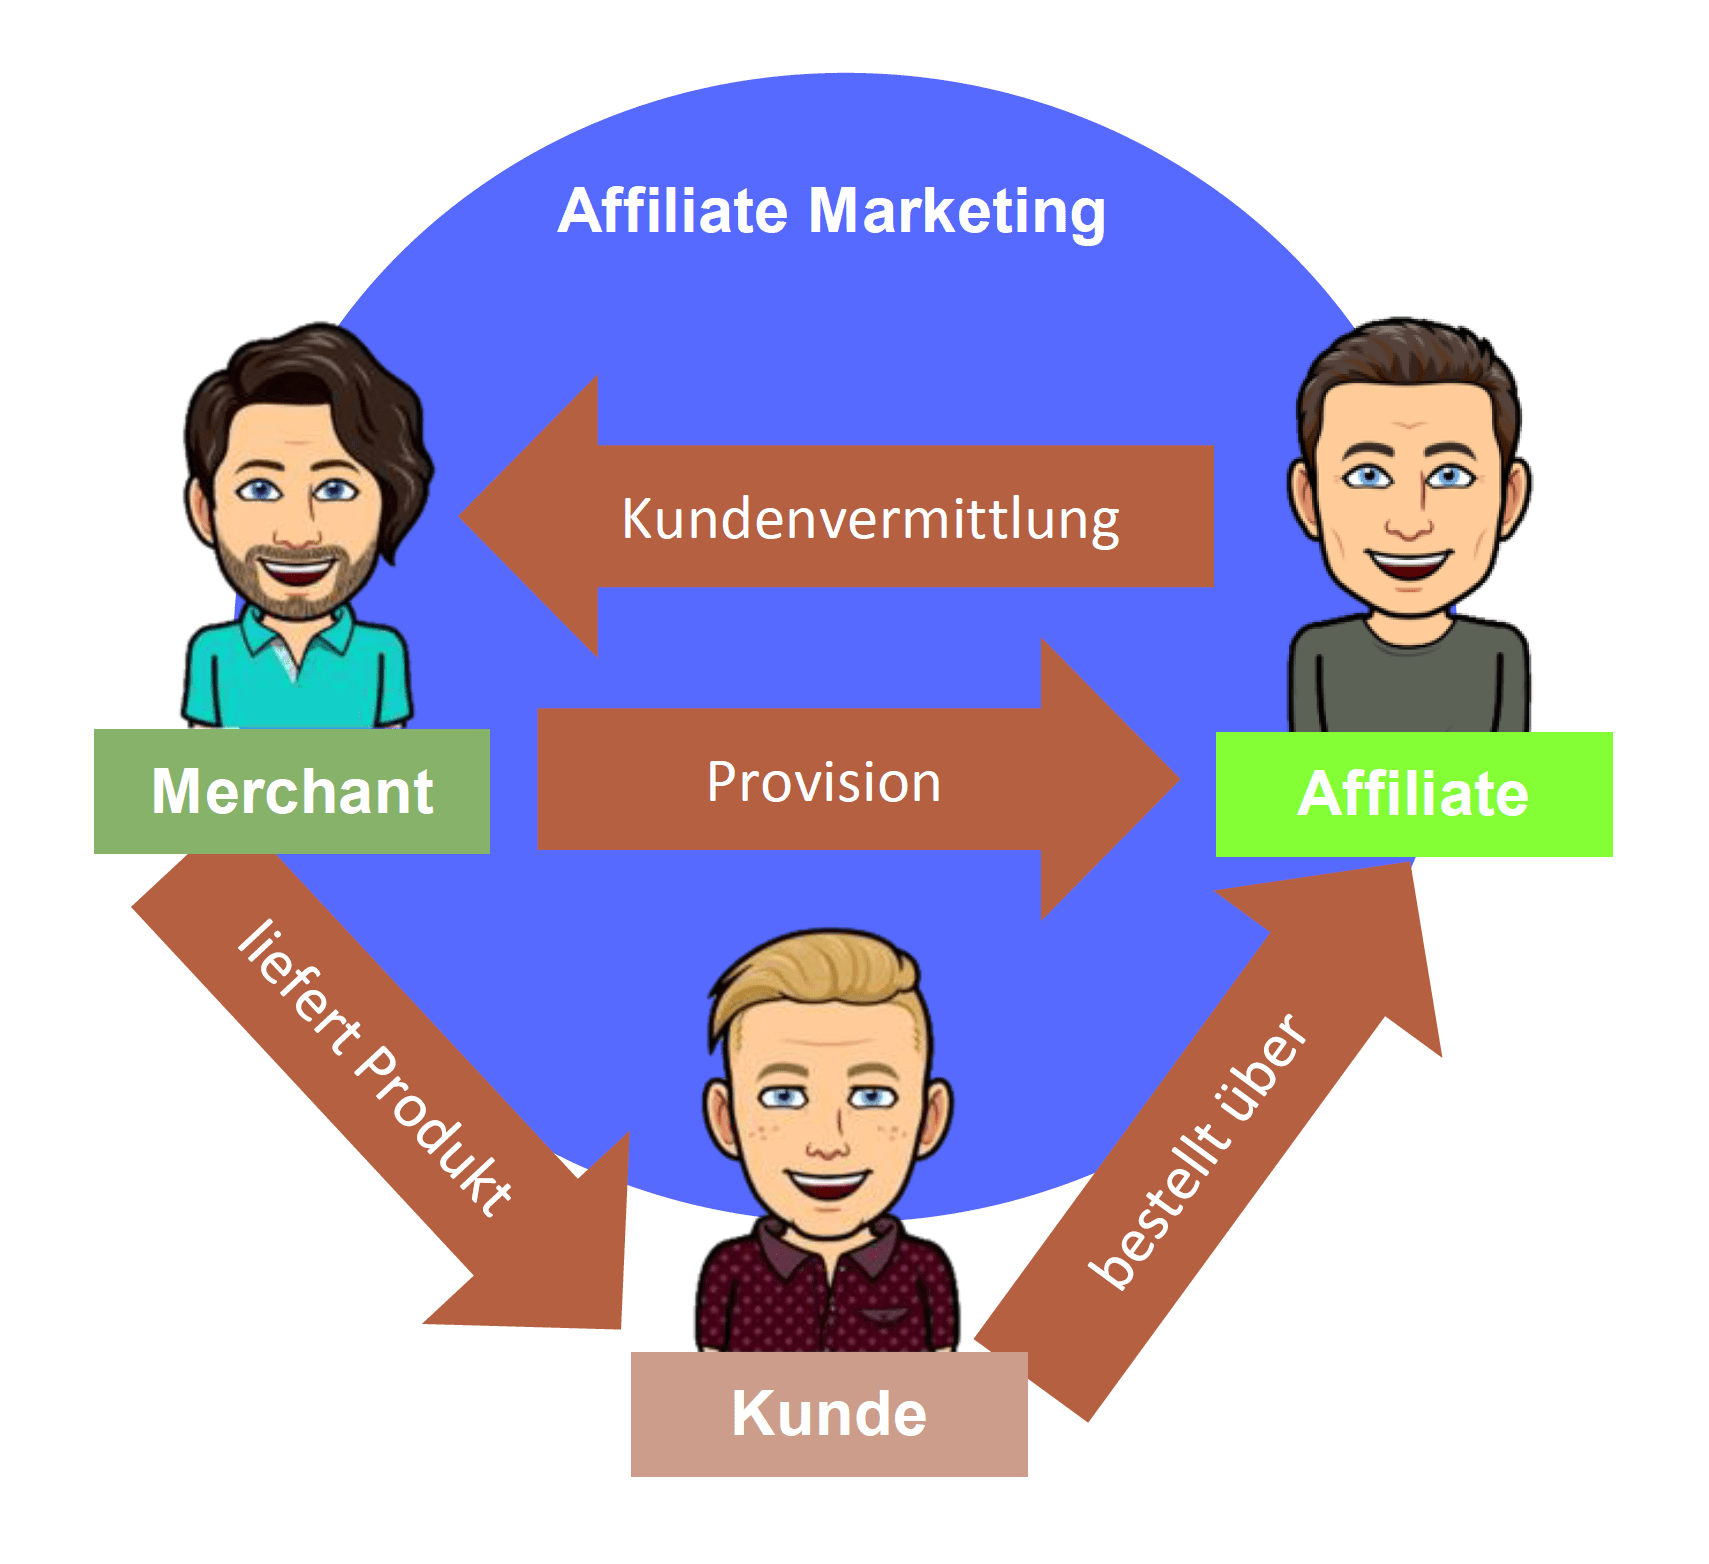 grafische Darstellung des Affiliate Marketing Prozesses